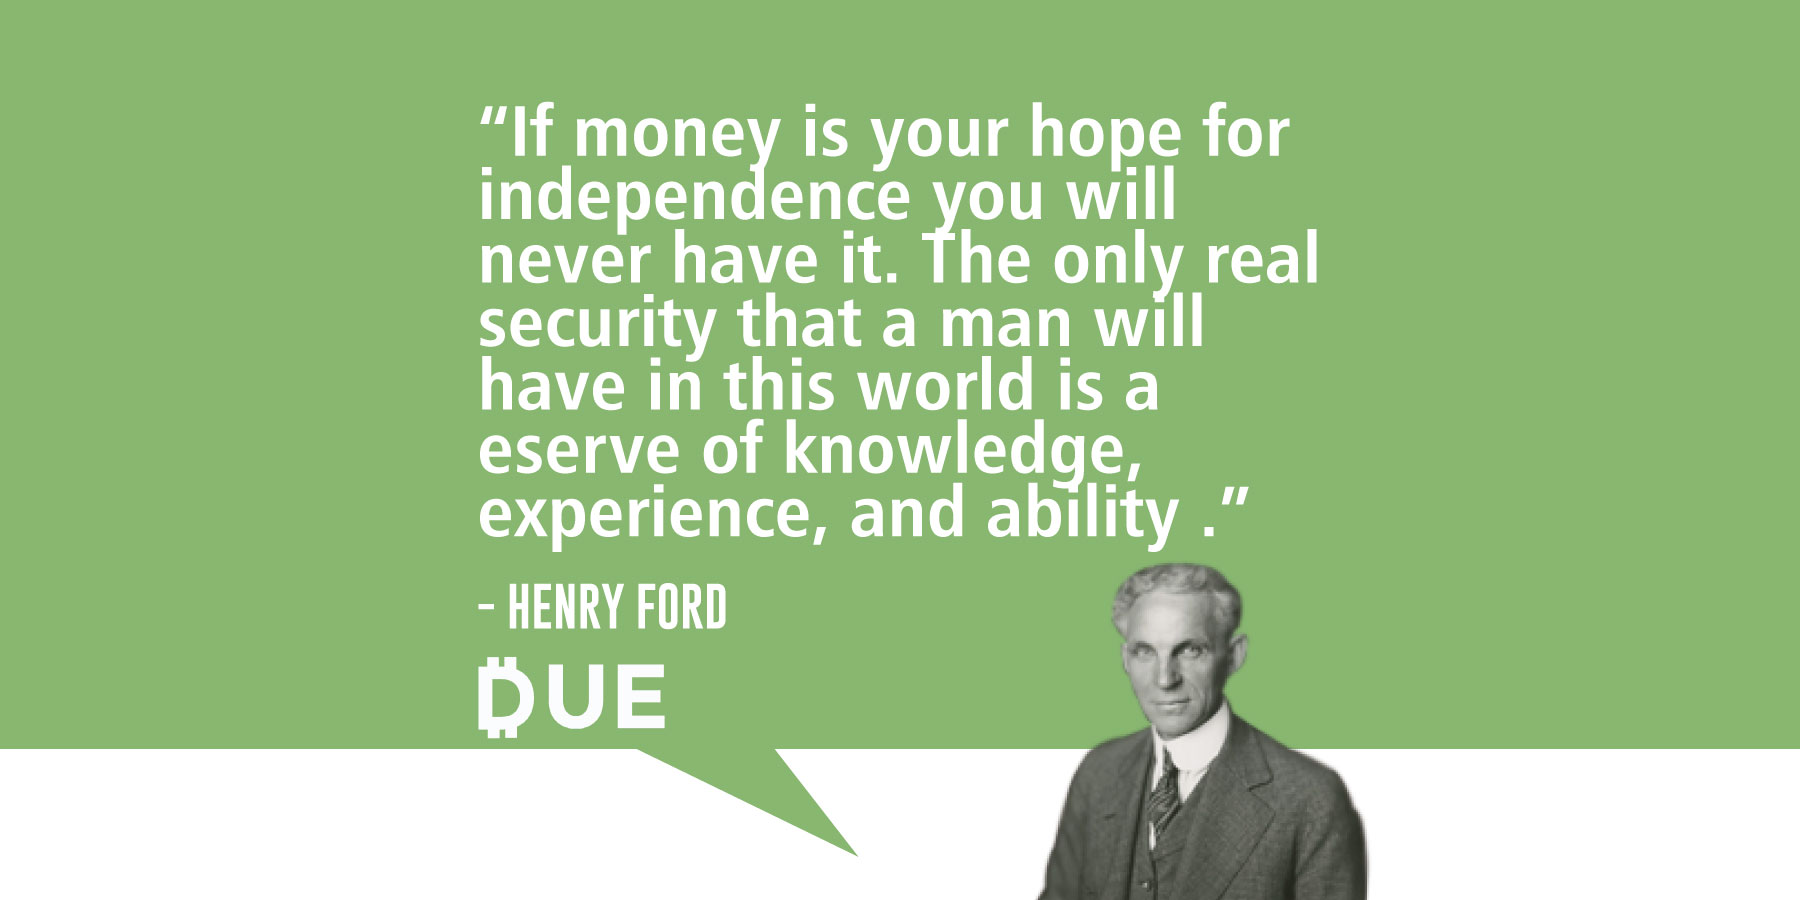 Henry Ford Quote - Money Doesn't Equal Independence